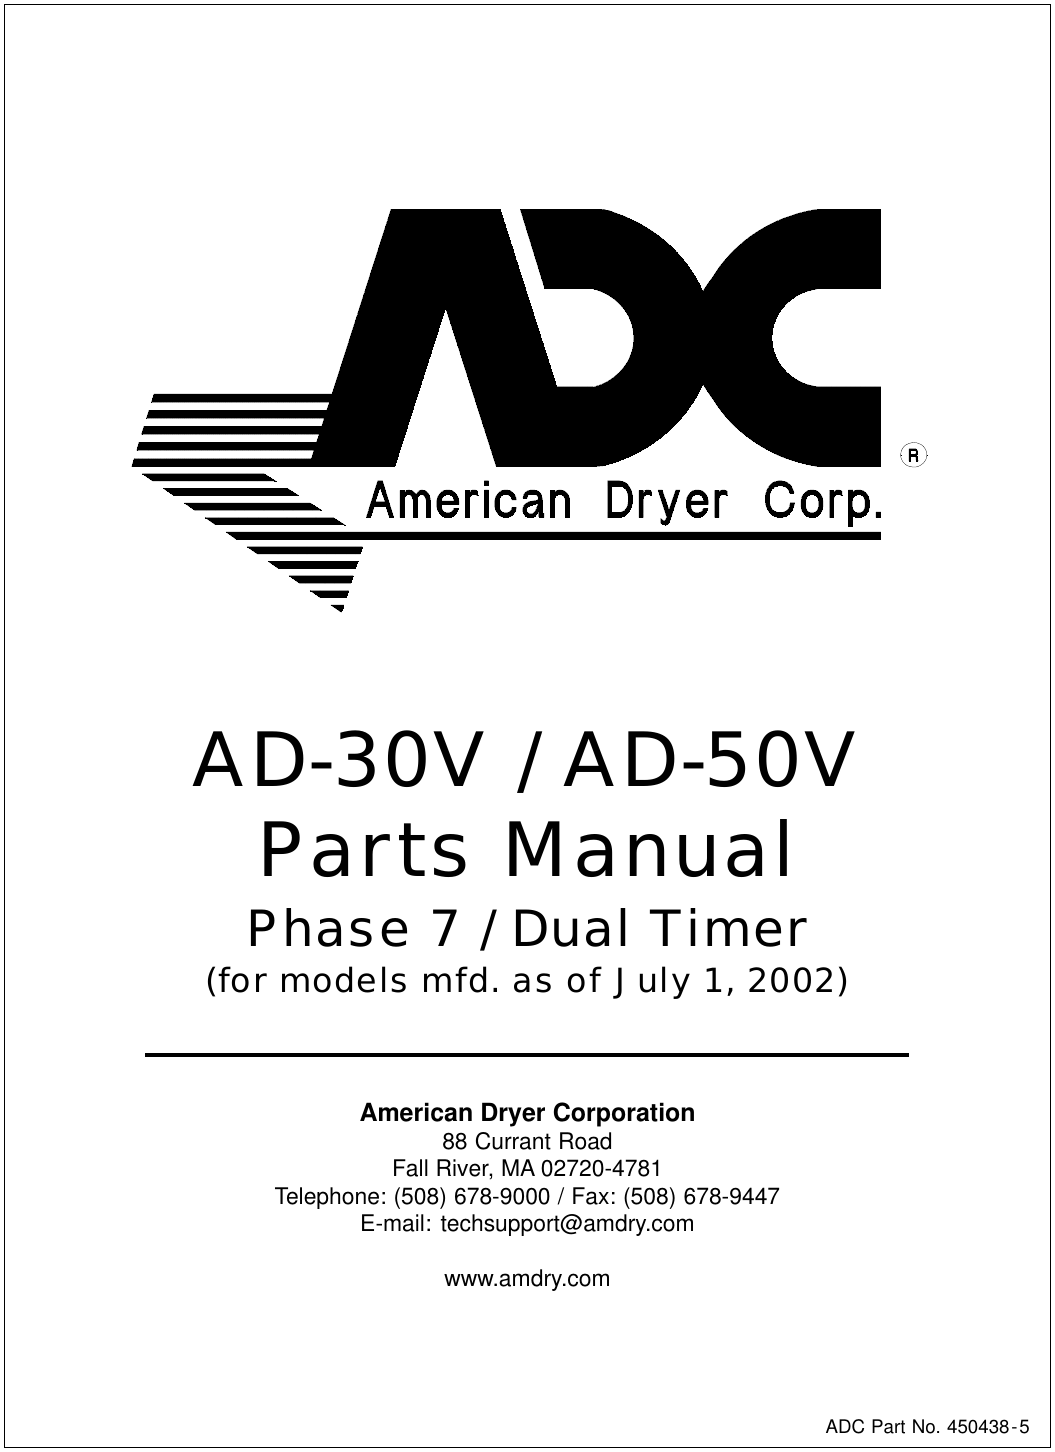 American Dryer Corp Ad 30V Users Manual AD24 Txt